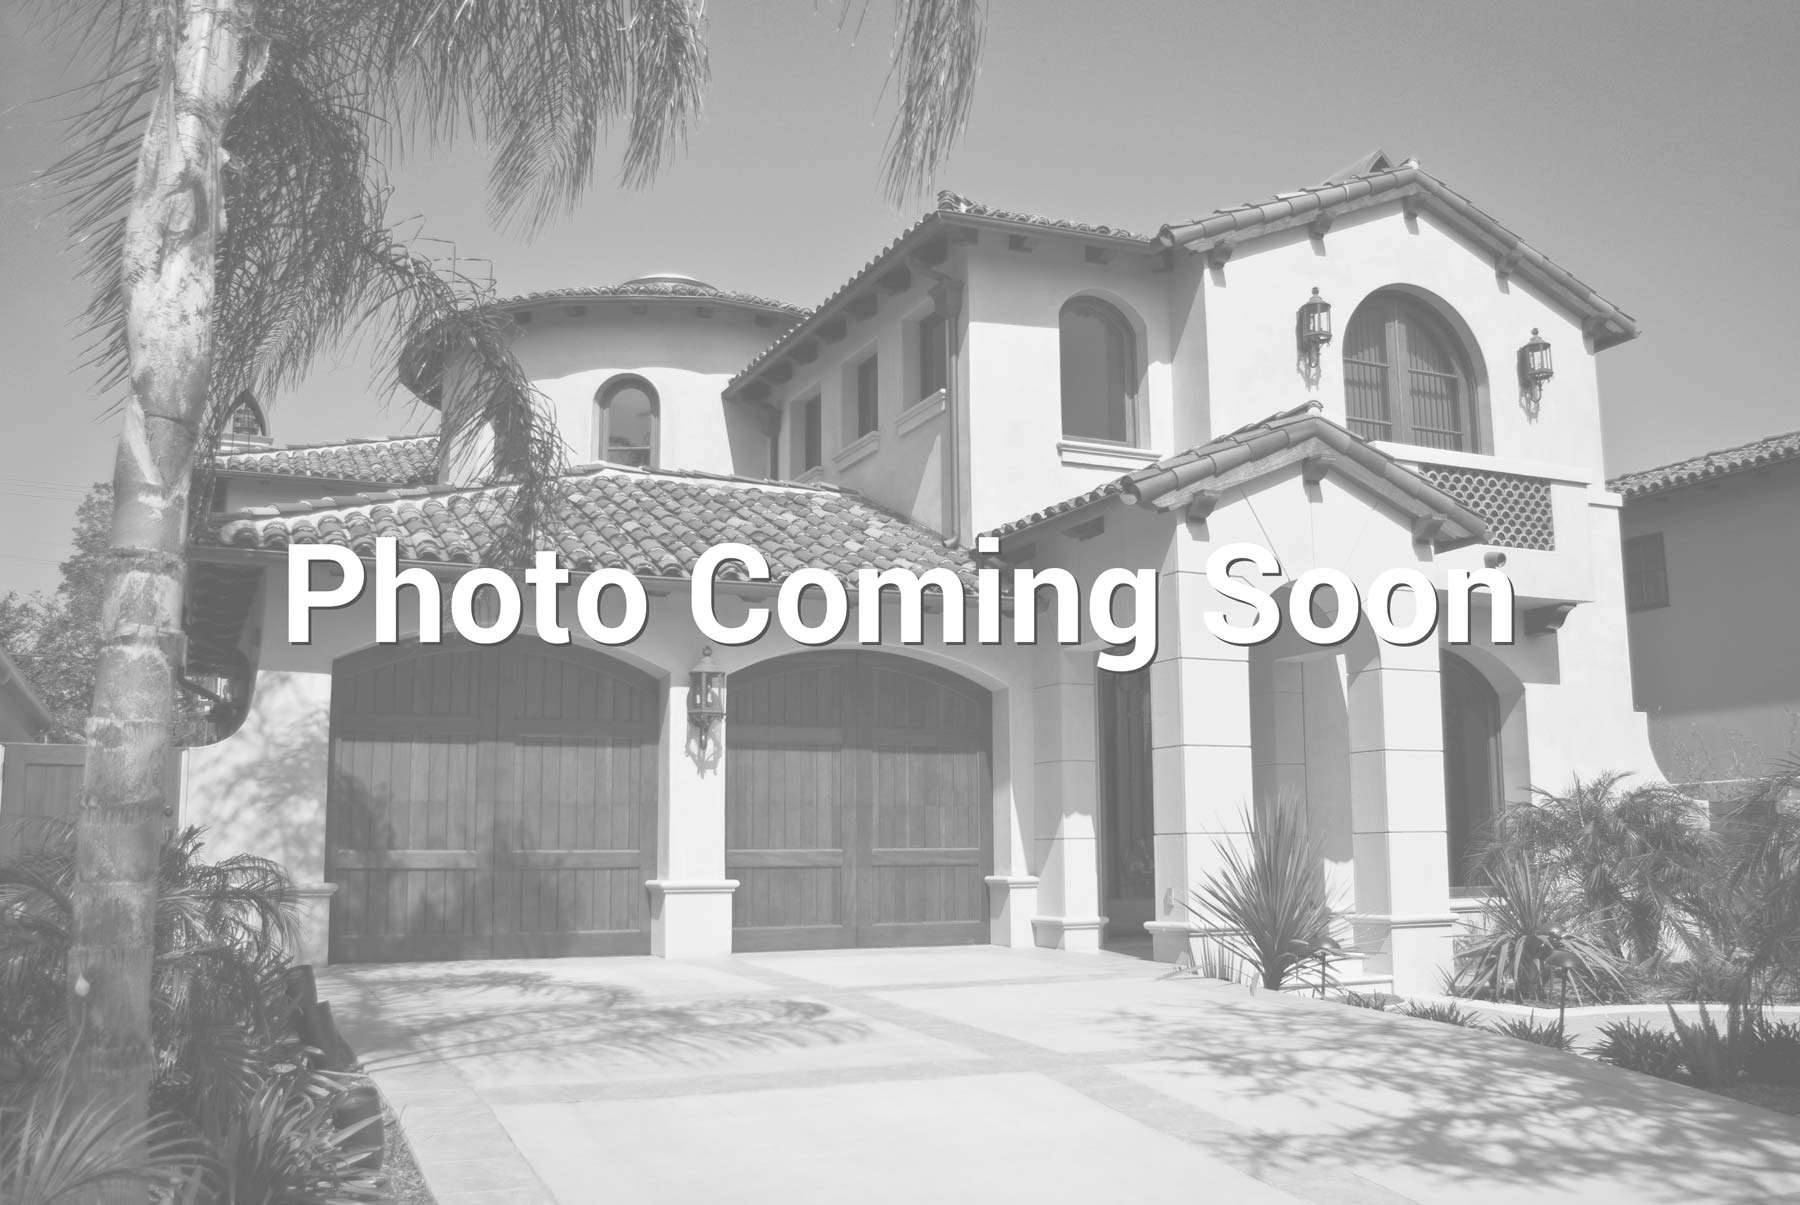 $325,000 - 5Br/3Ba - Home for Sale in Copper Basin Unit 5a, San Tan Valley